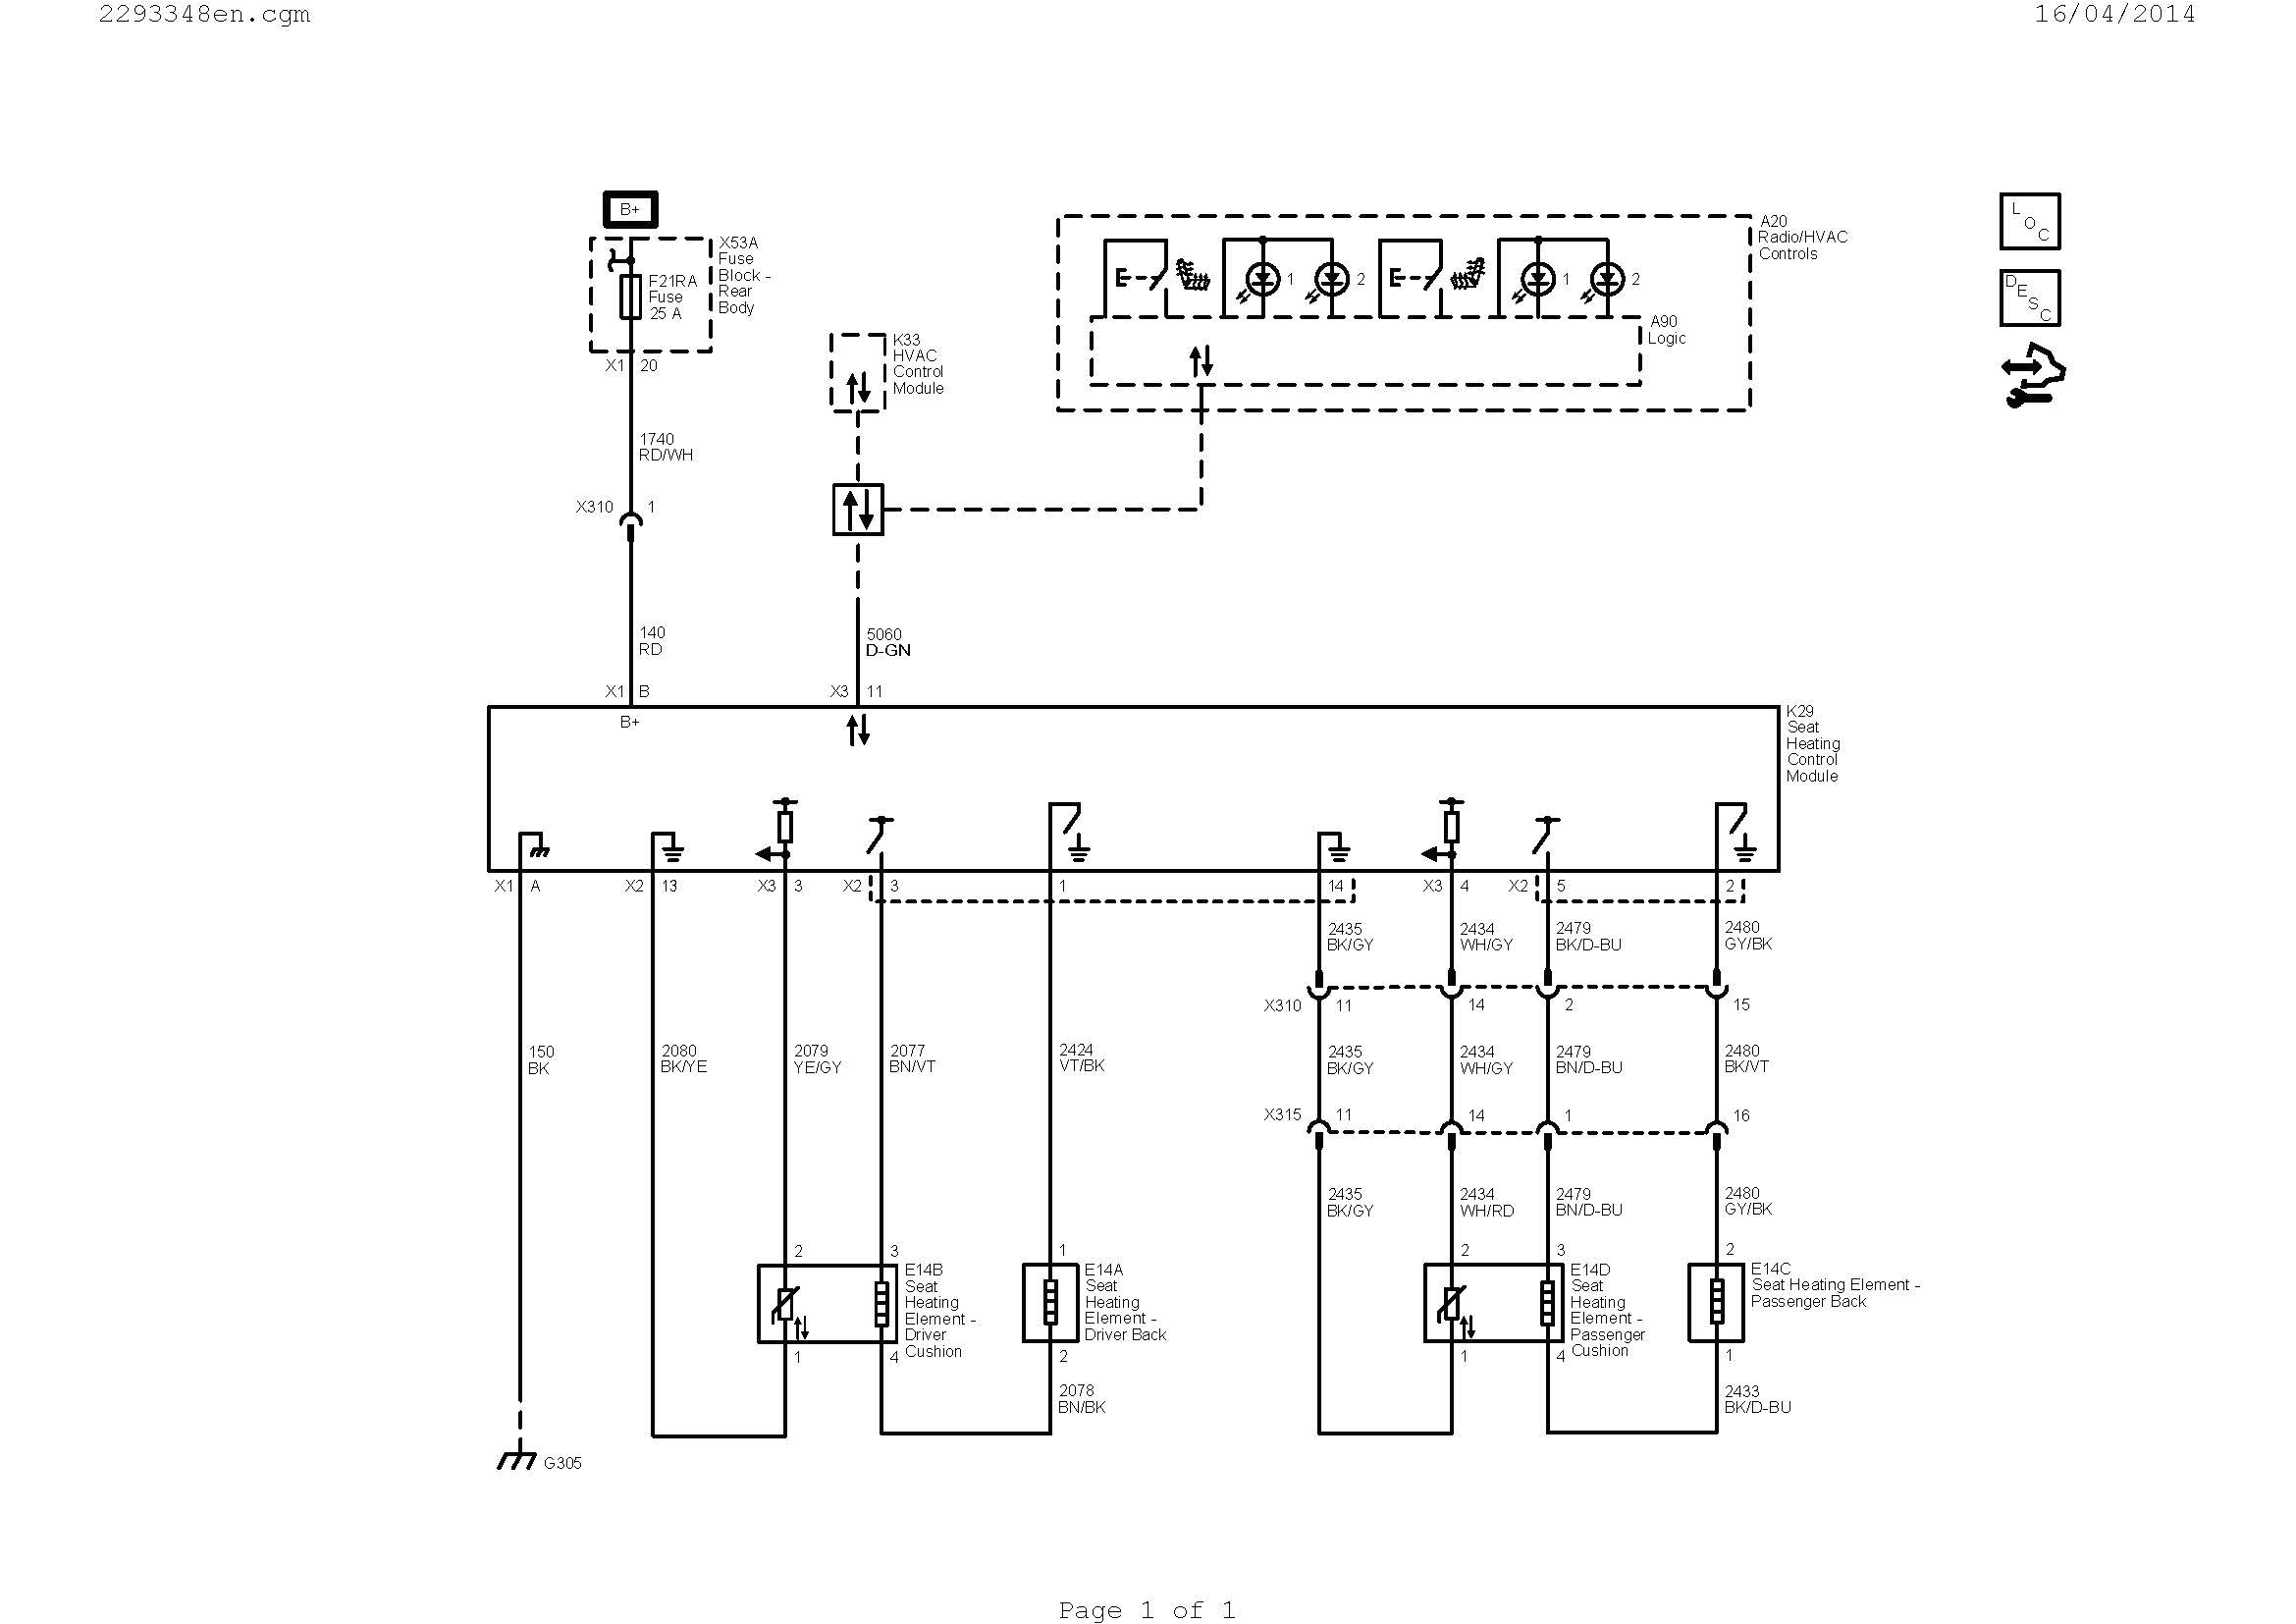 Furnace Wiring Diagrams Wiring Diagram for thermostat to Furnace Sample